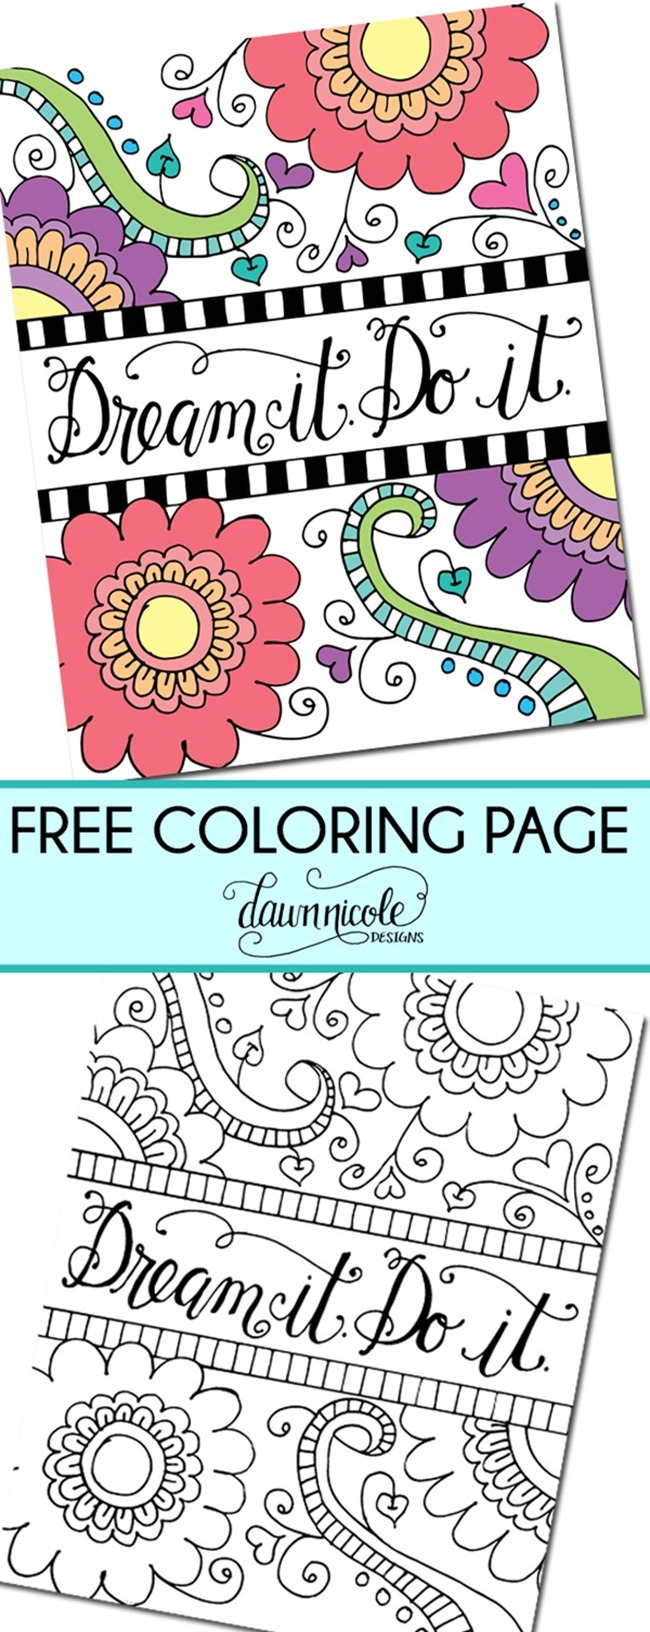 12 inspiring quote coloring pages for adults dream it - Inspirational Coloring Pages For Adults